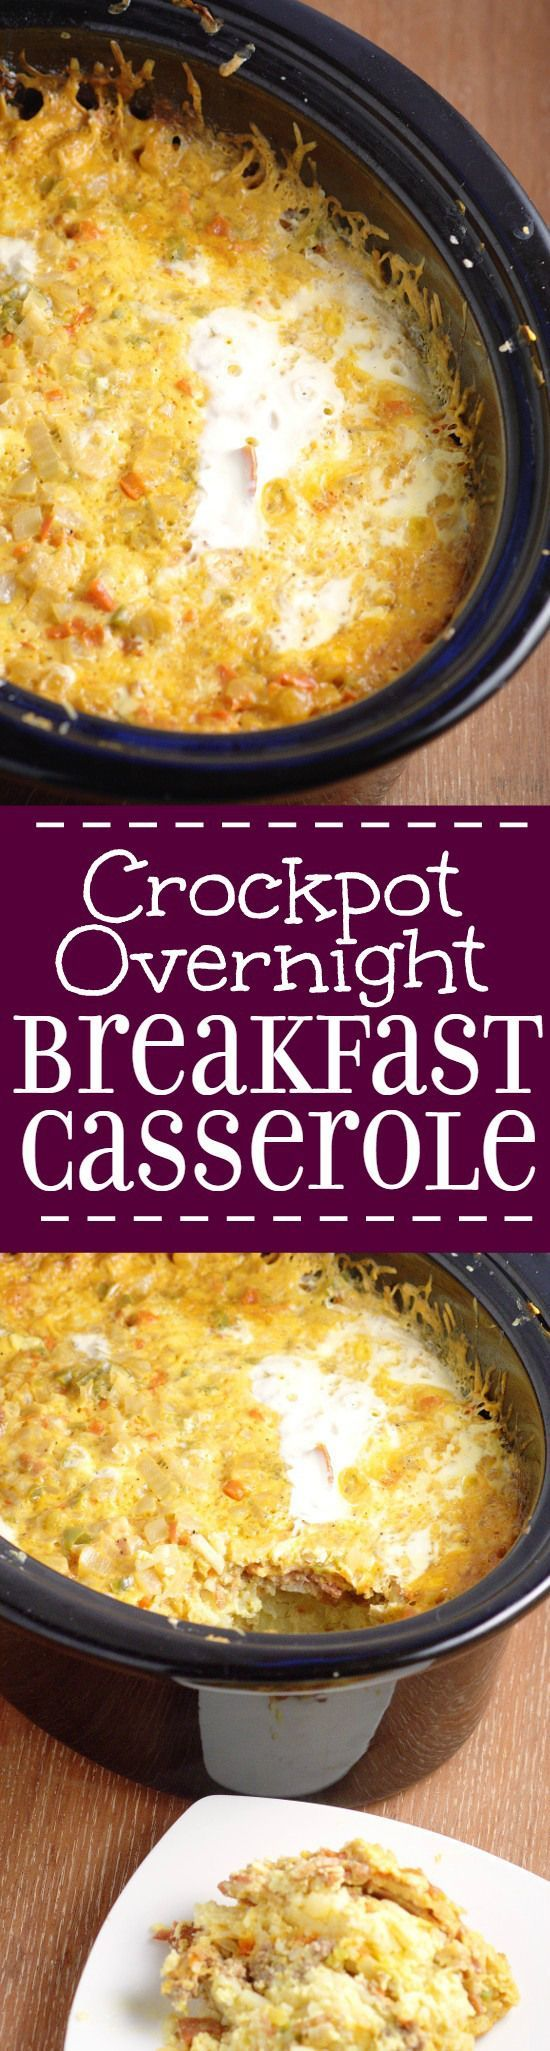 Crockpot Overnight Breakfast Casserole | Recipe | Overnight ...